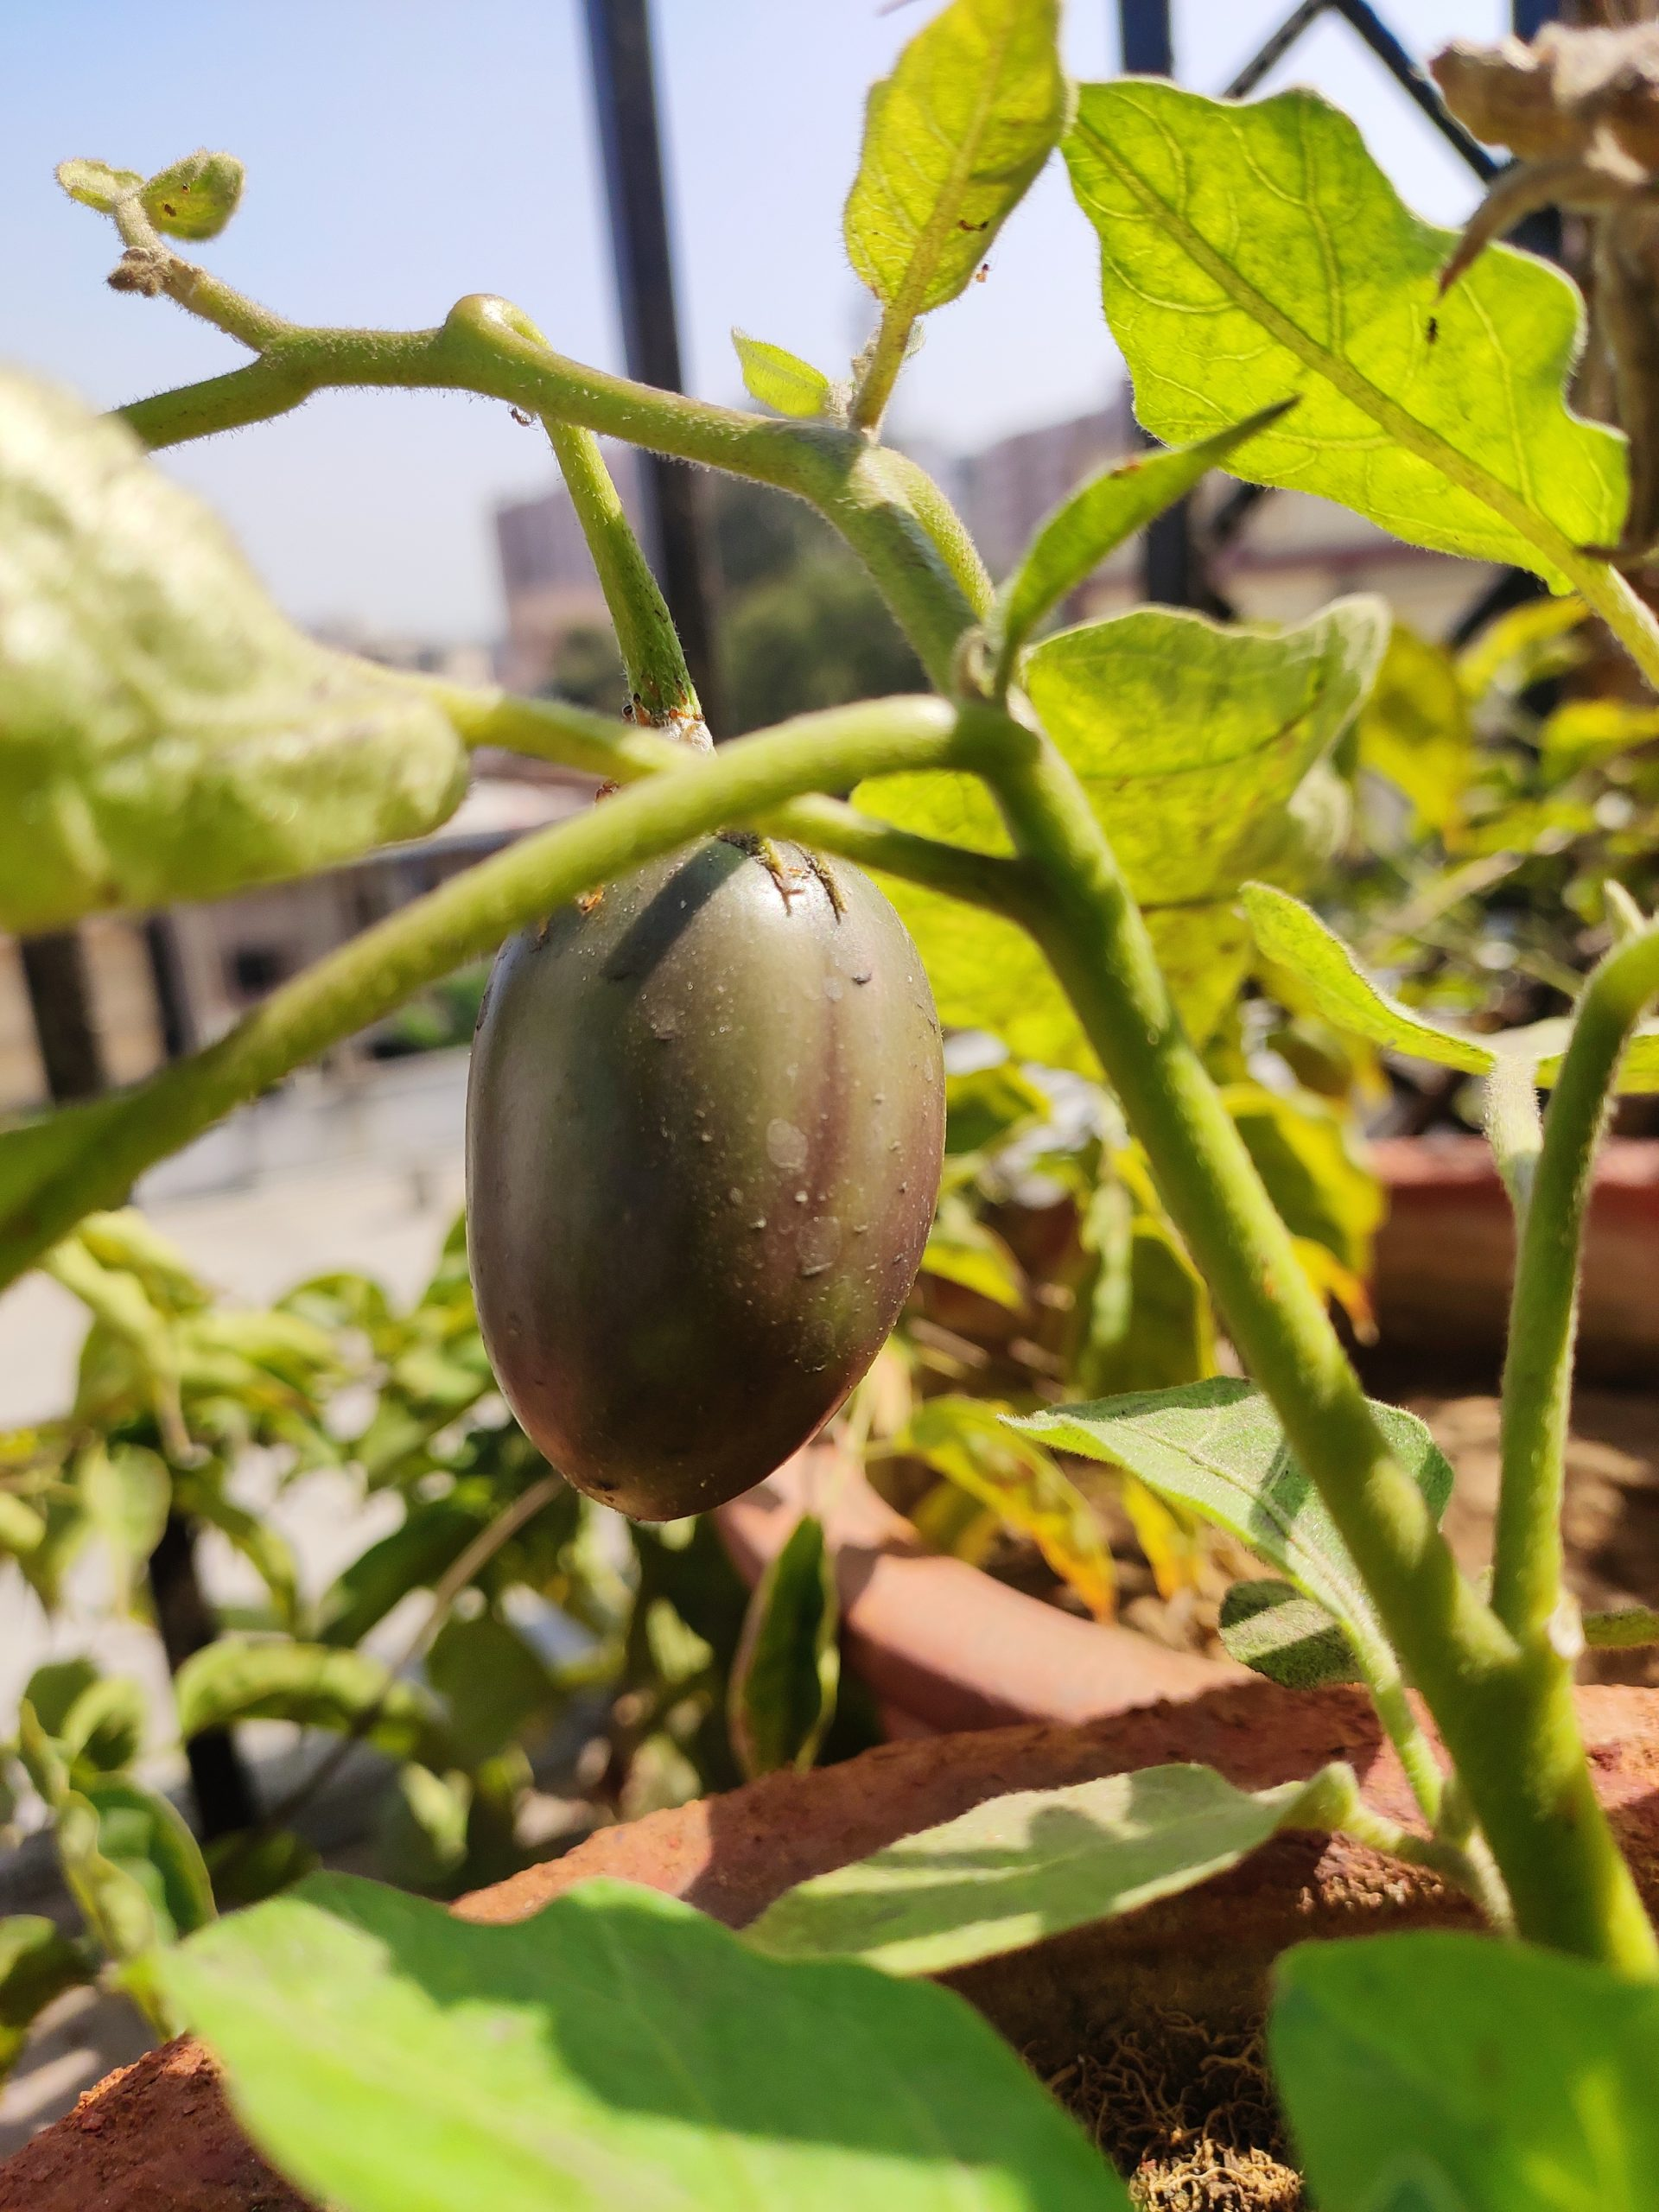 A little brinjal on plant